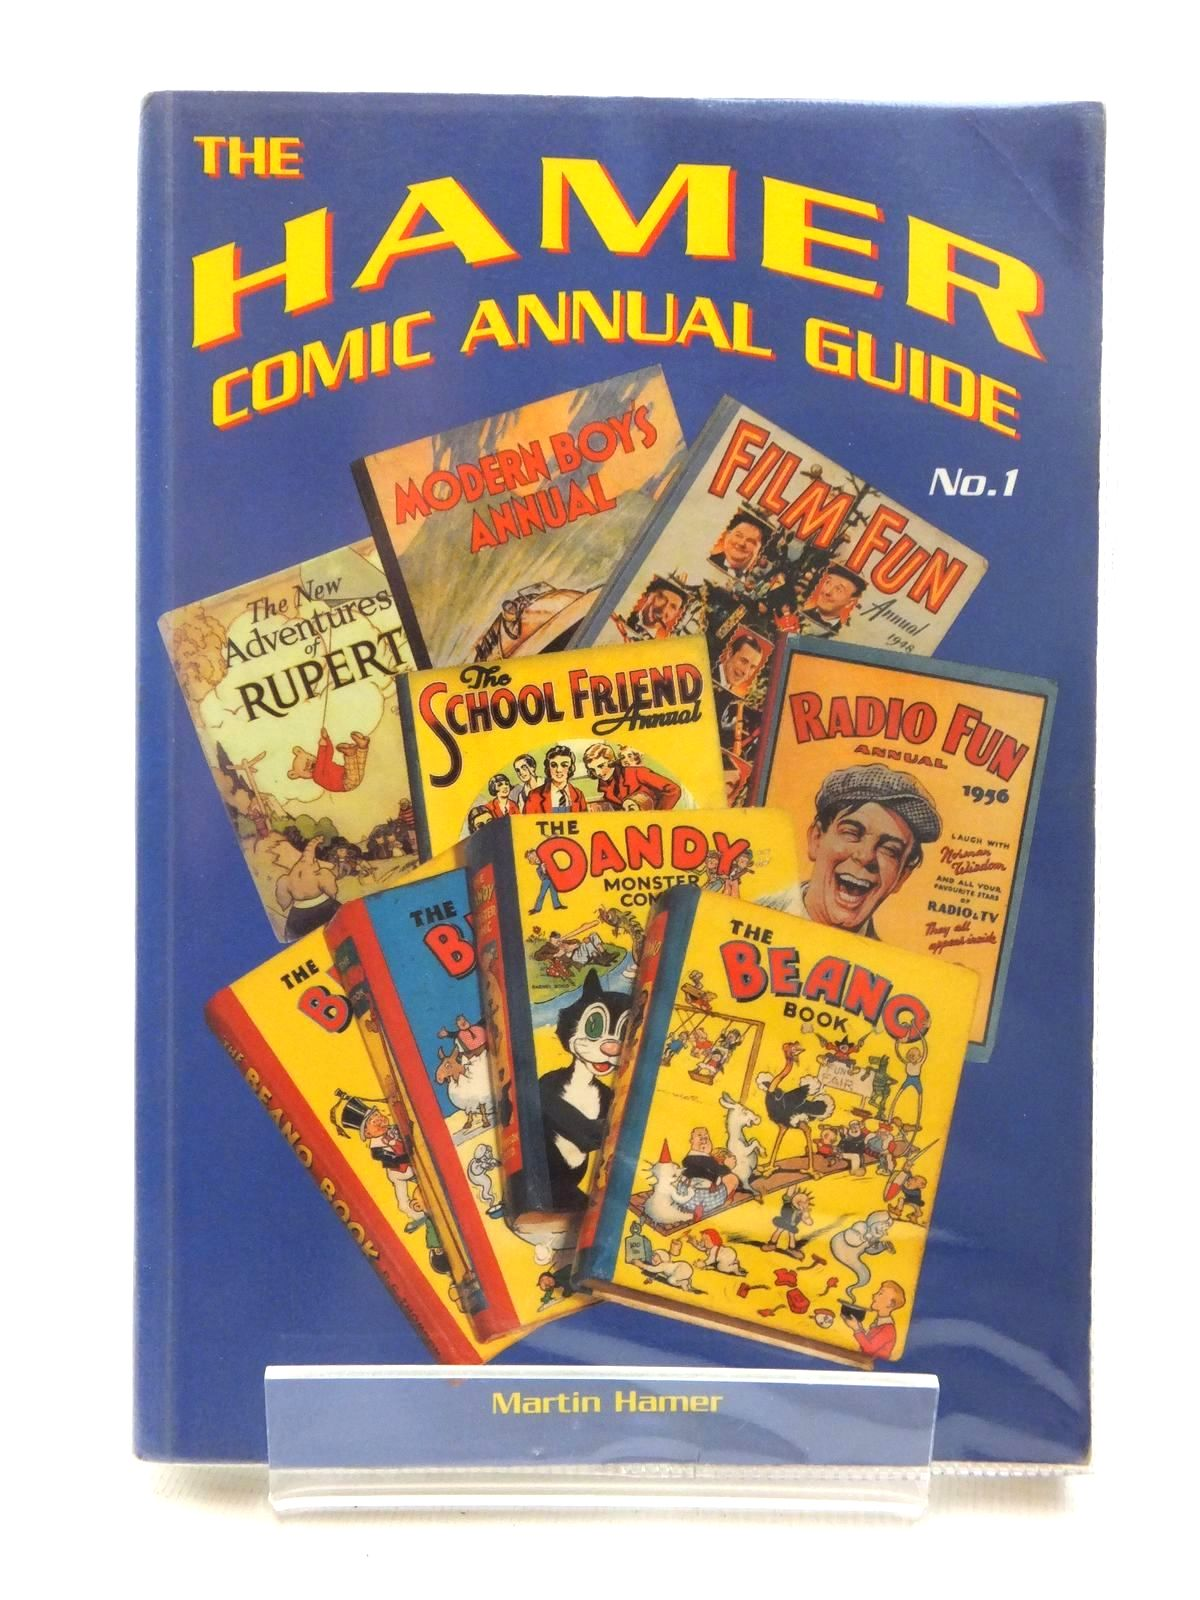 Photo of THE HAMER COMIC ANNUAL GUIDE No. 1 written by Hamer, Martin published by Hamer 20th Century Books (STOCK CODE: 1317078)  for sale by Stella & Rose's Books